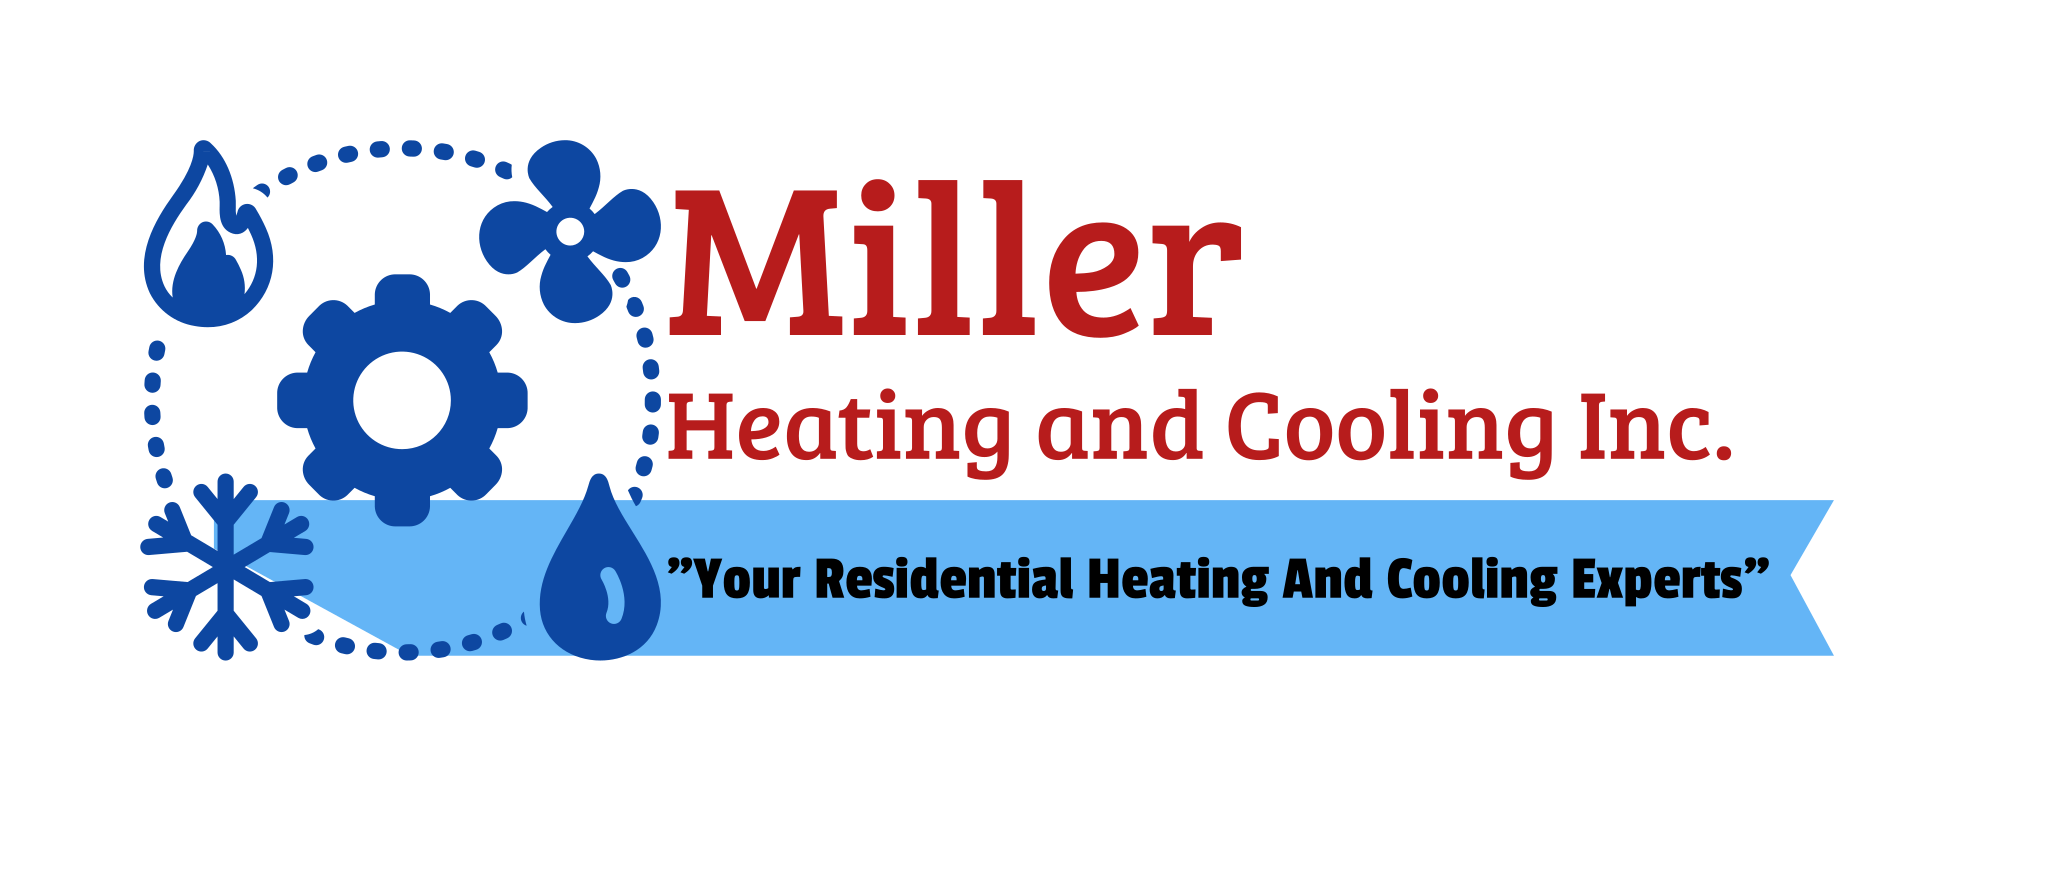 Miller Heating And Cooling Inc